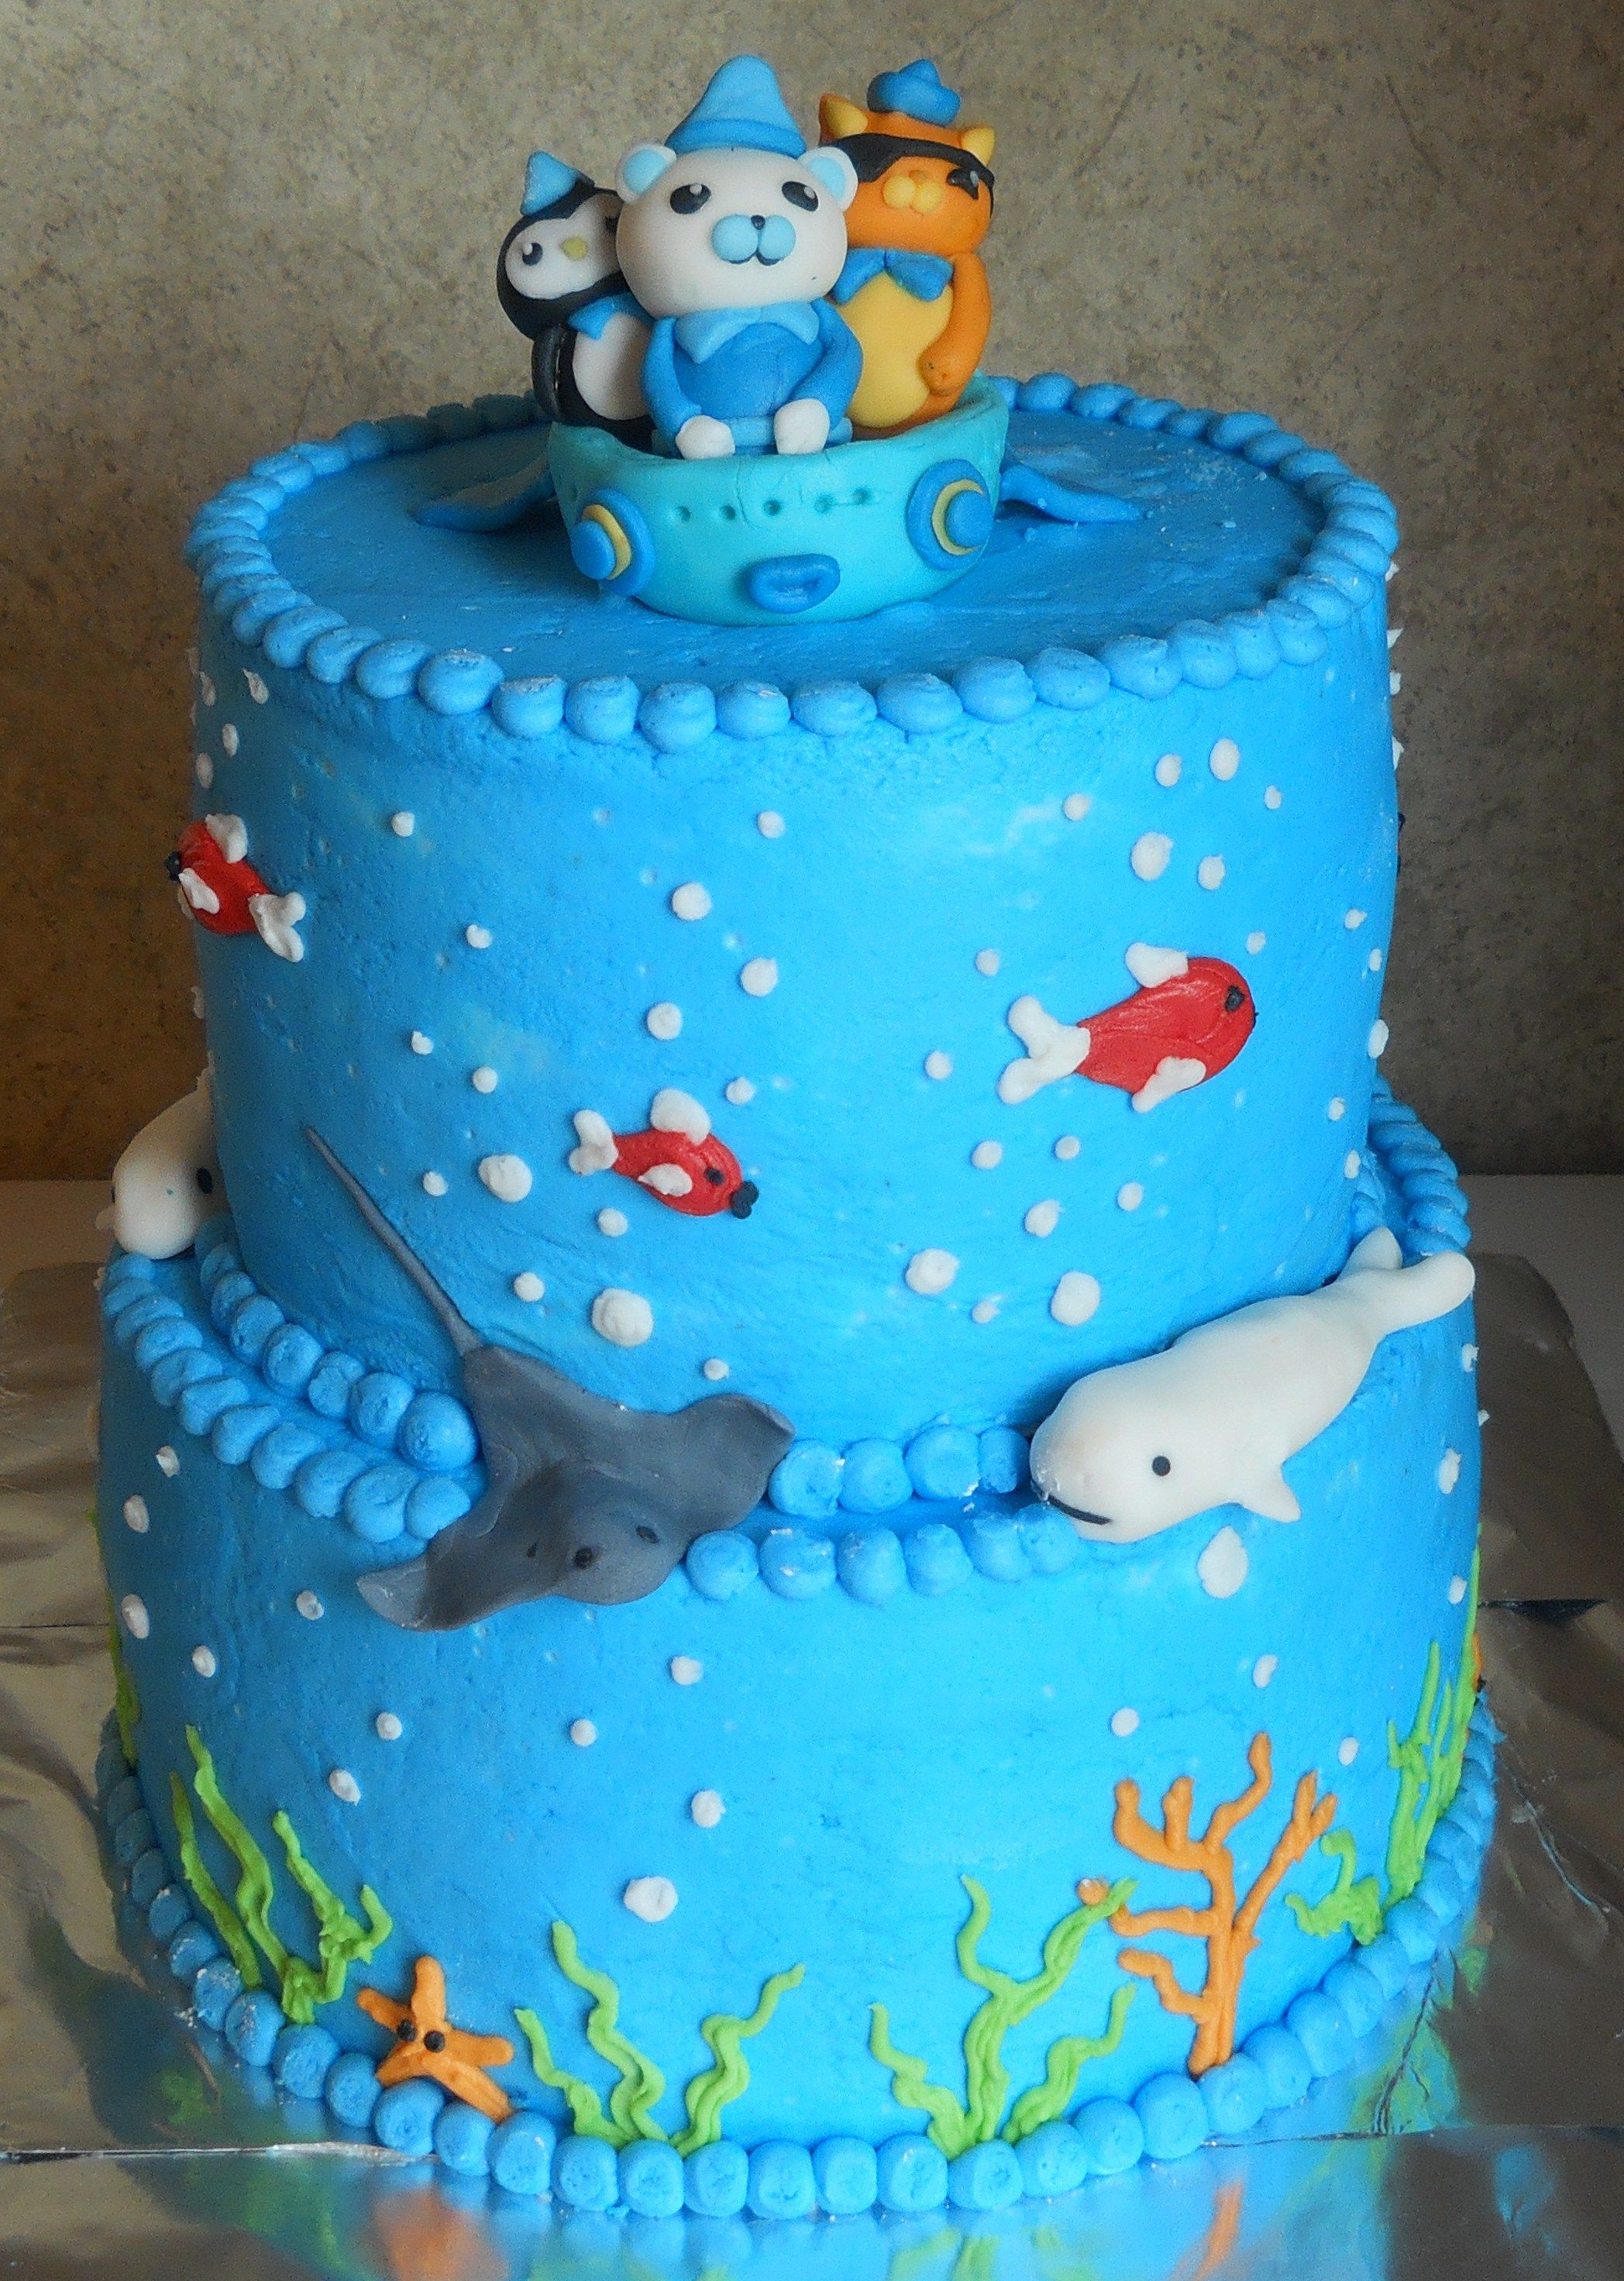 Octonauts Cake Cristie Carter This Is The Kelsey Wants You To Make For Her Birthday